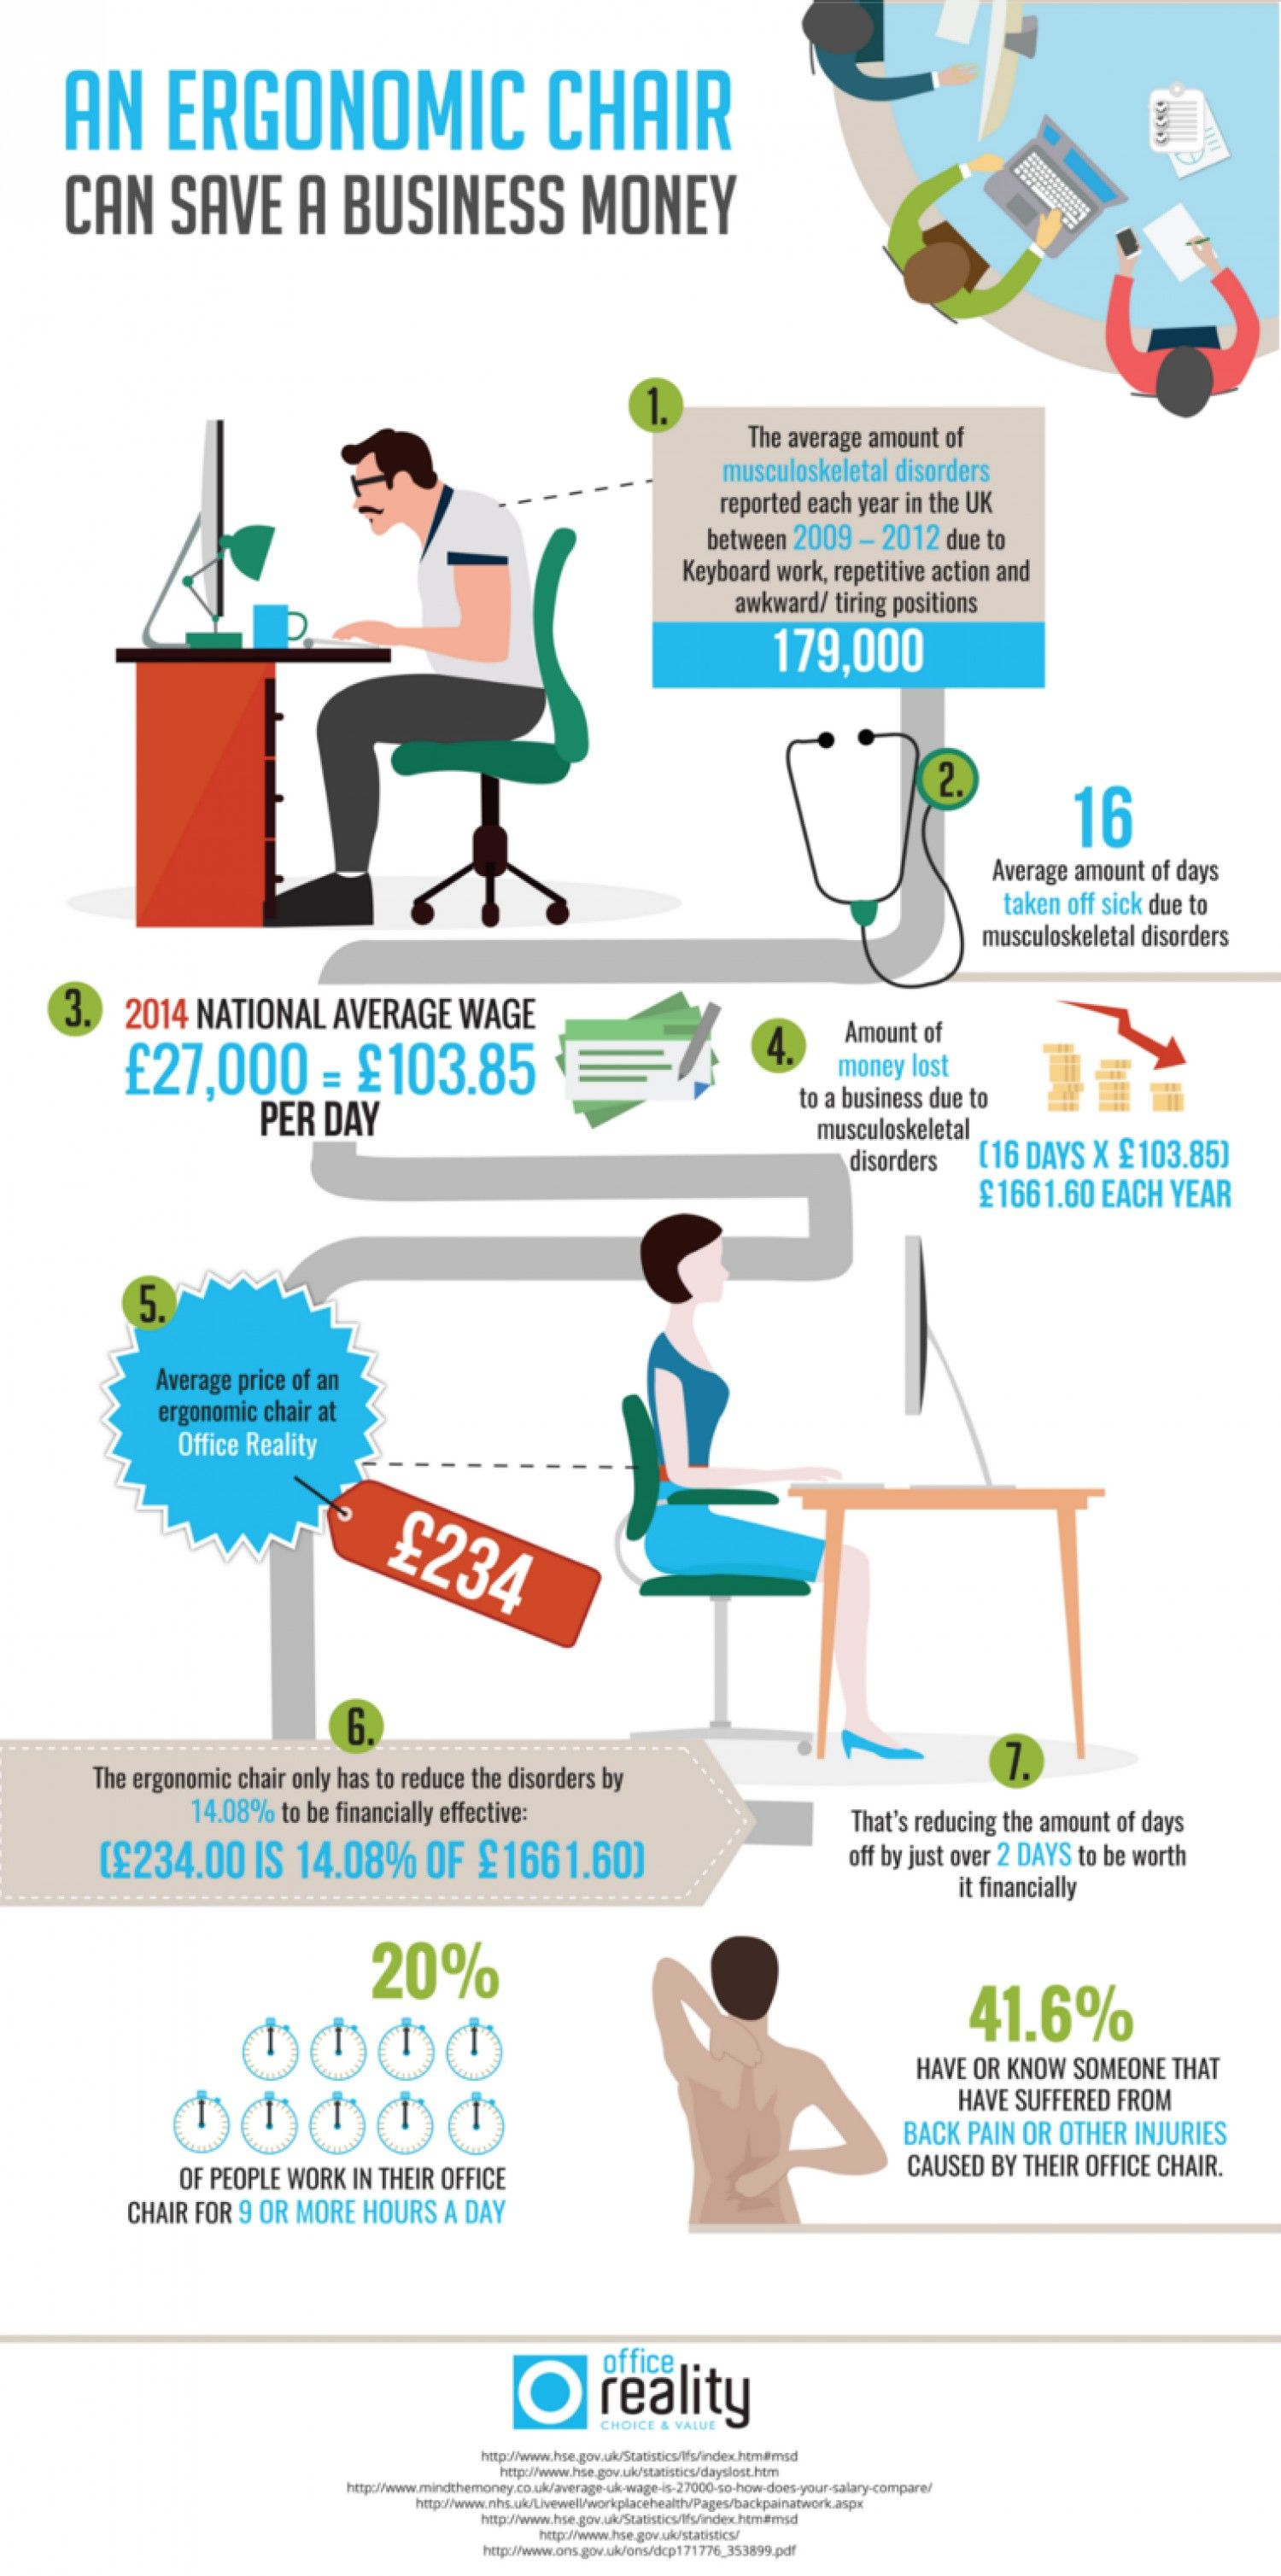 A Recent Survey Found That 42 Of Office Workers Suffer